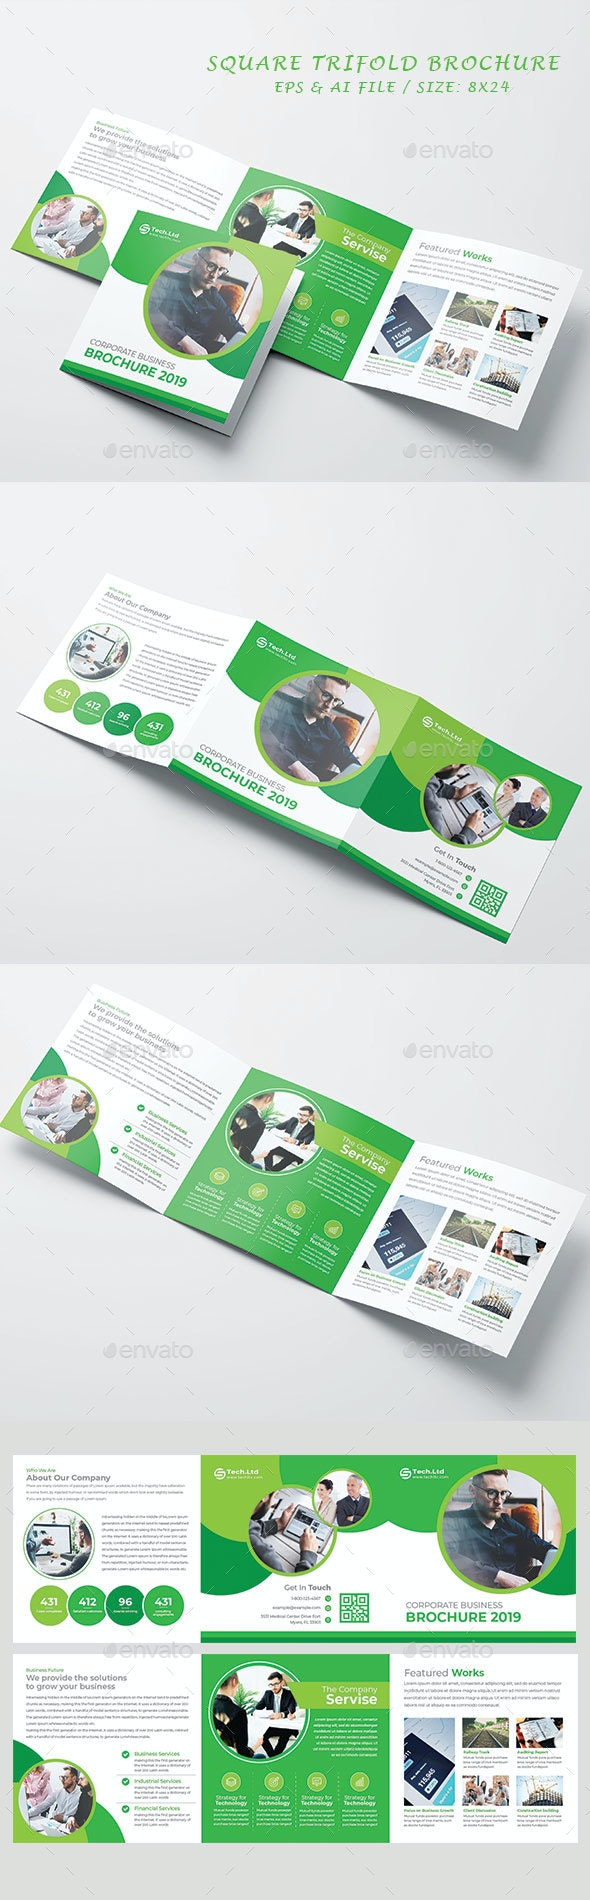 Square Trifold Brochure - Brochures Print Templates